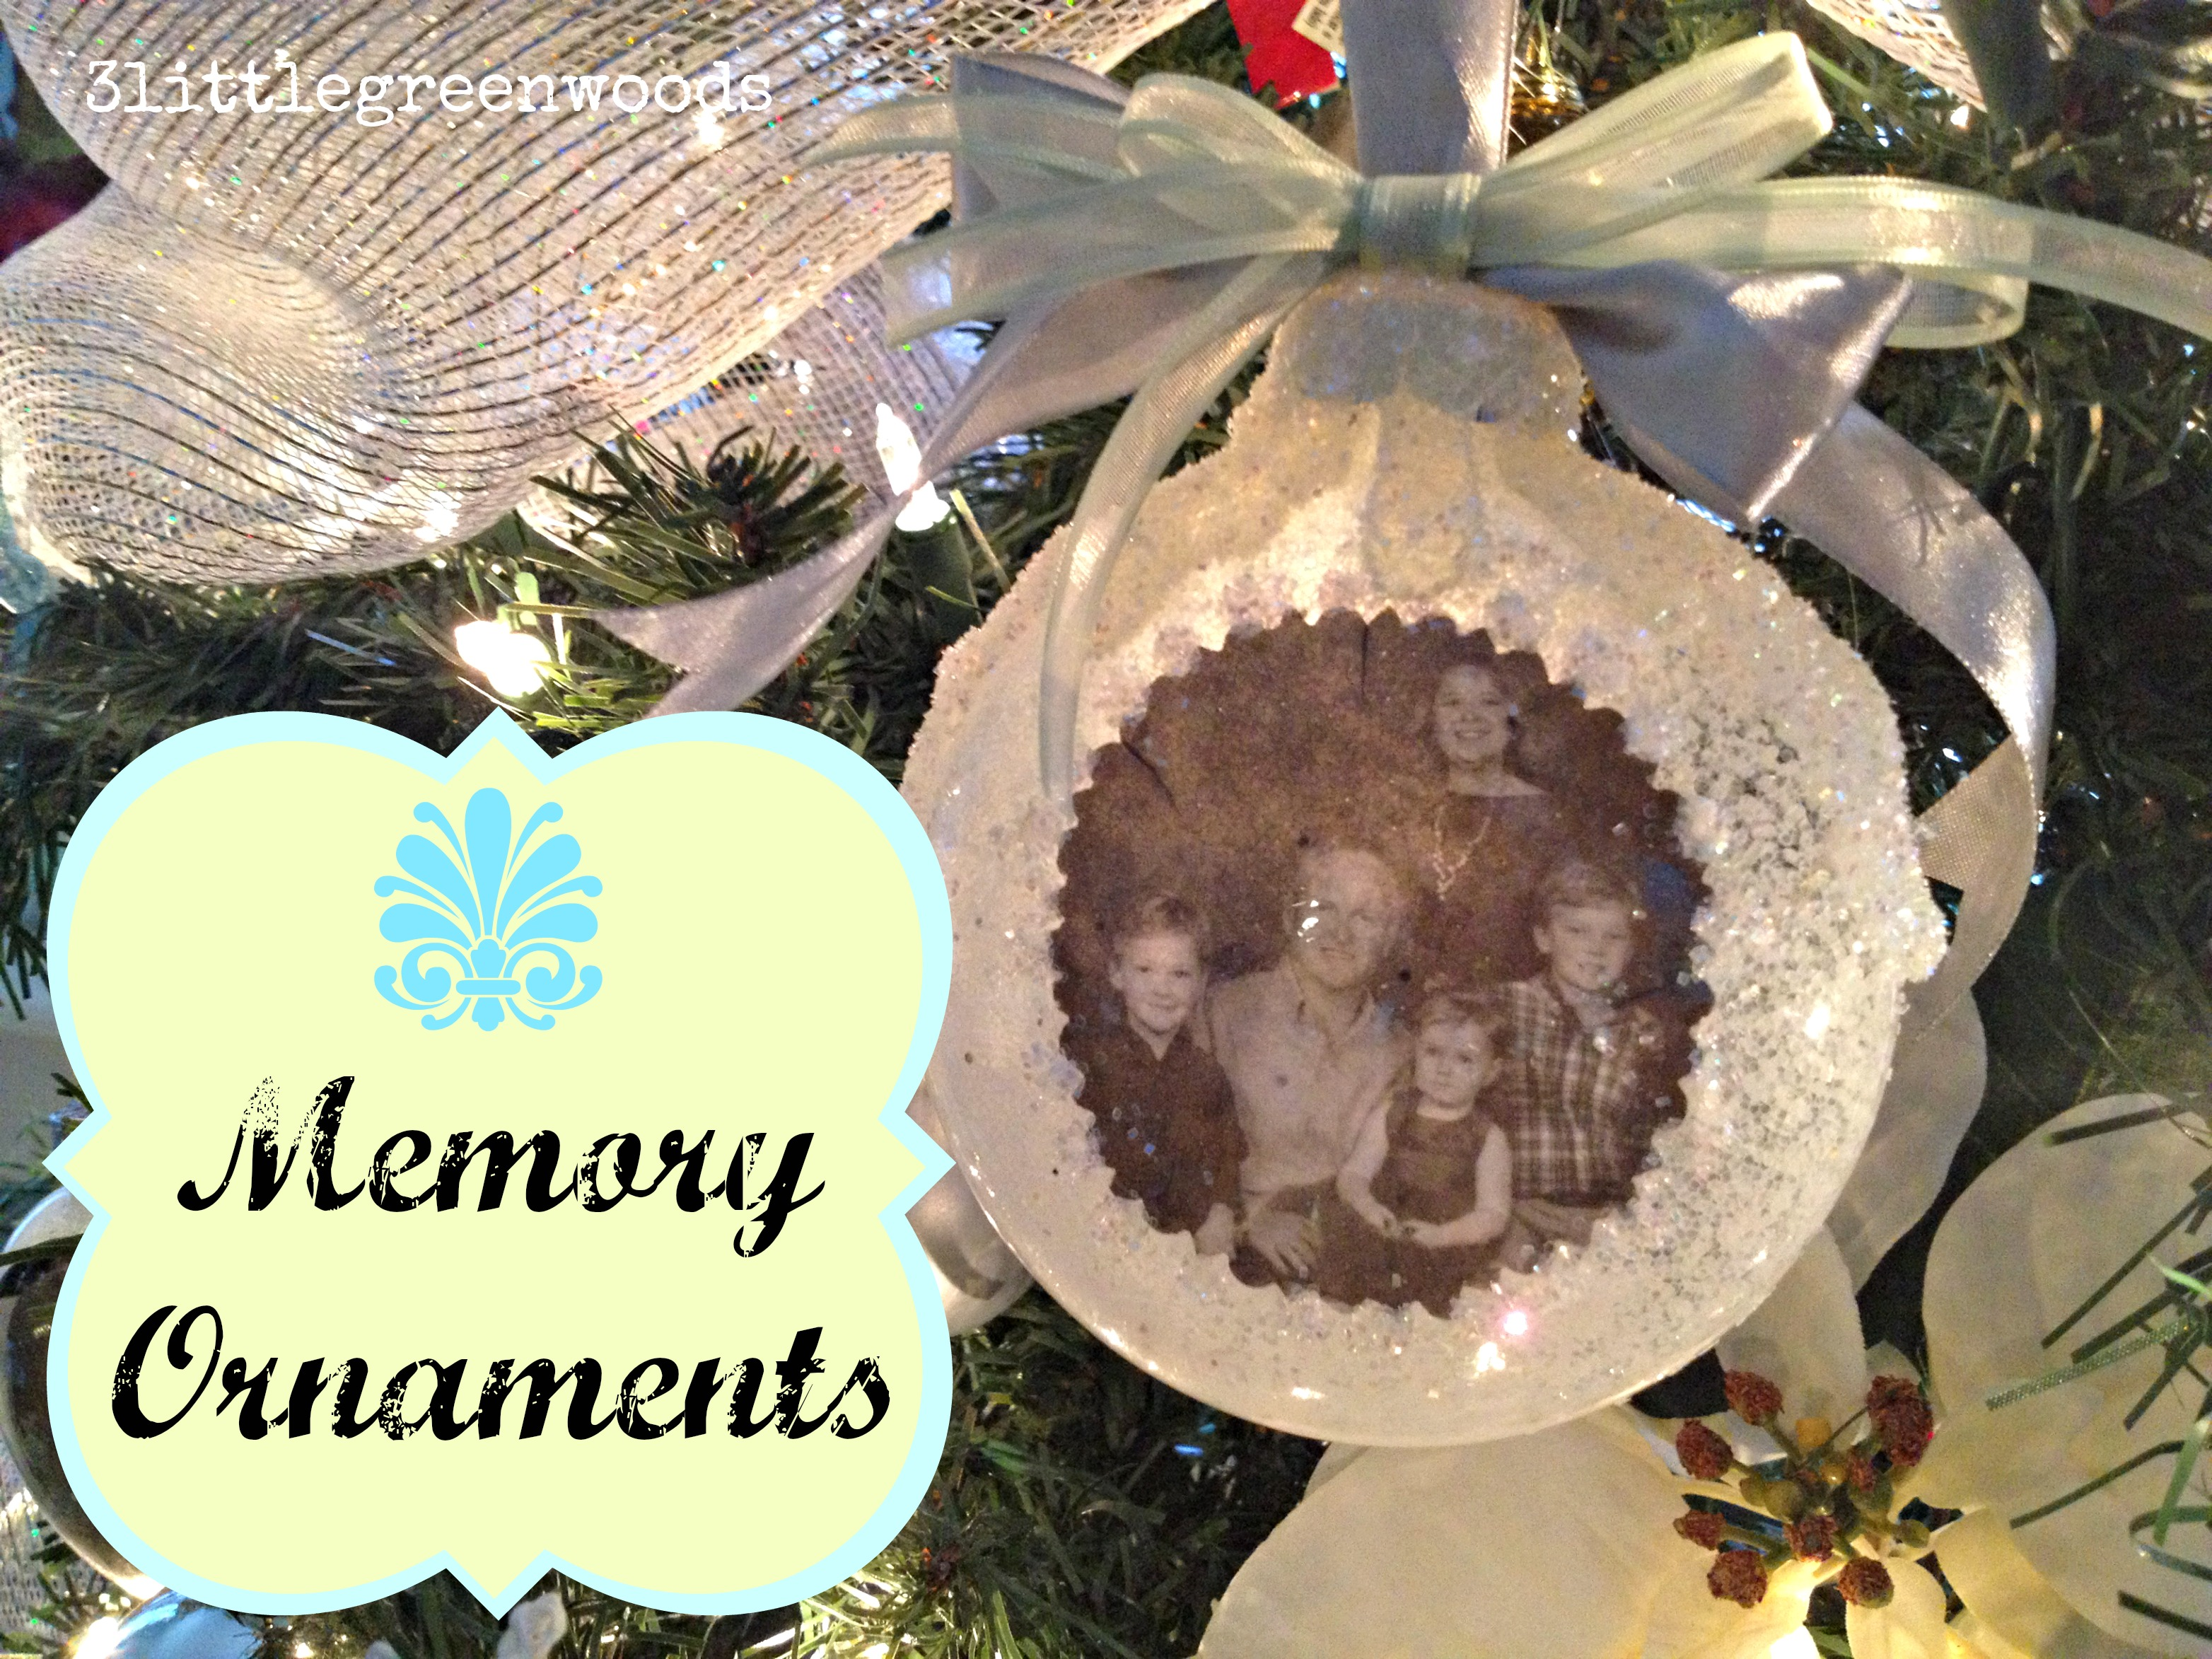 In memory of ornaments - Memory Ornaments Using Photographs 3littlegreenwoods